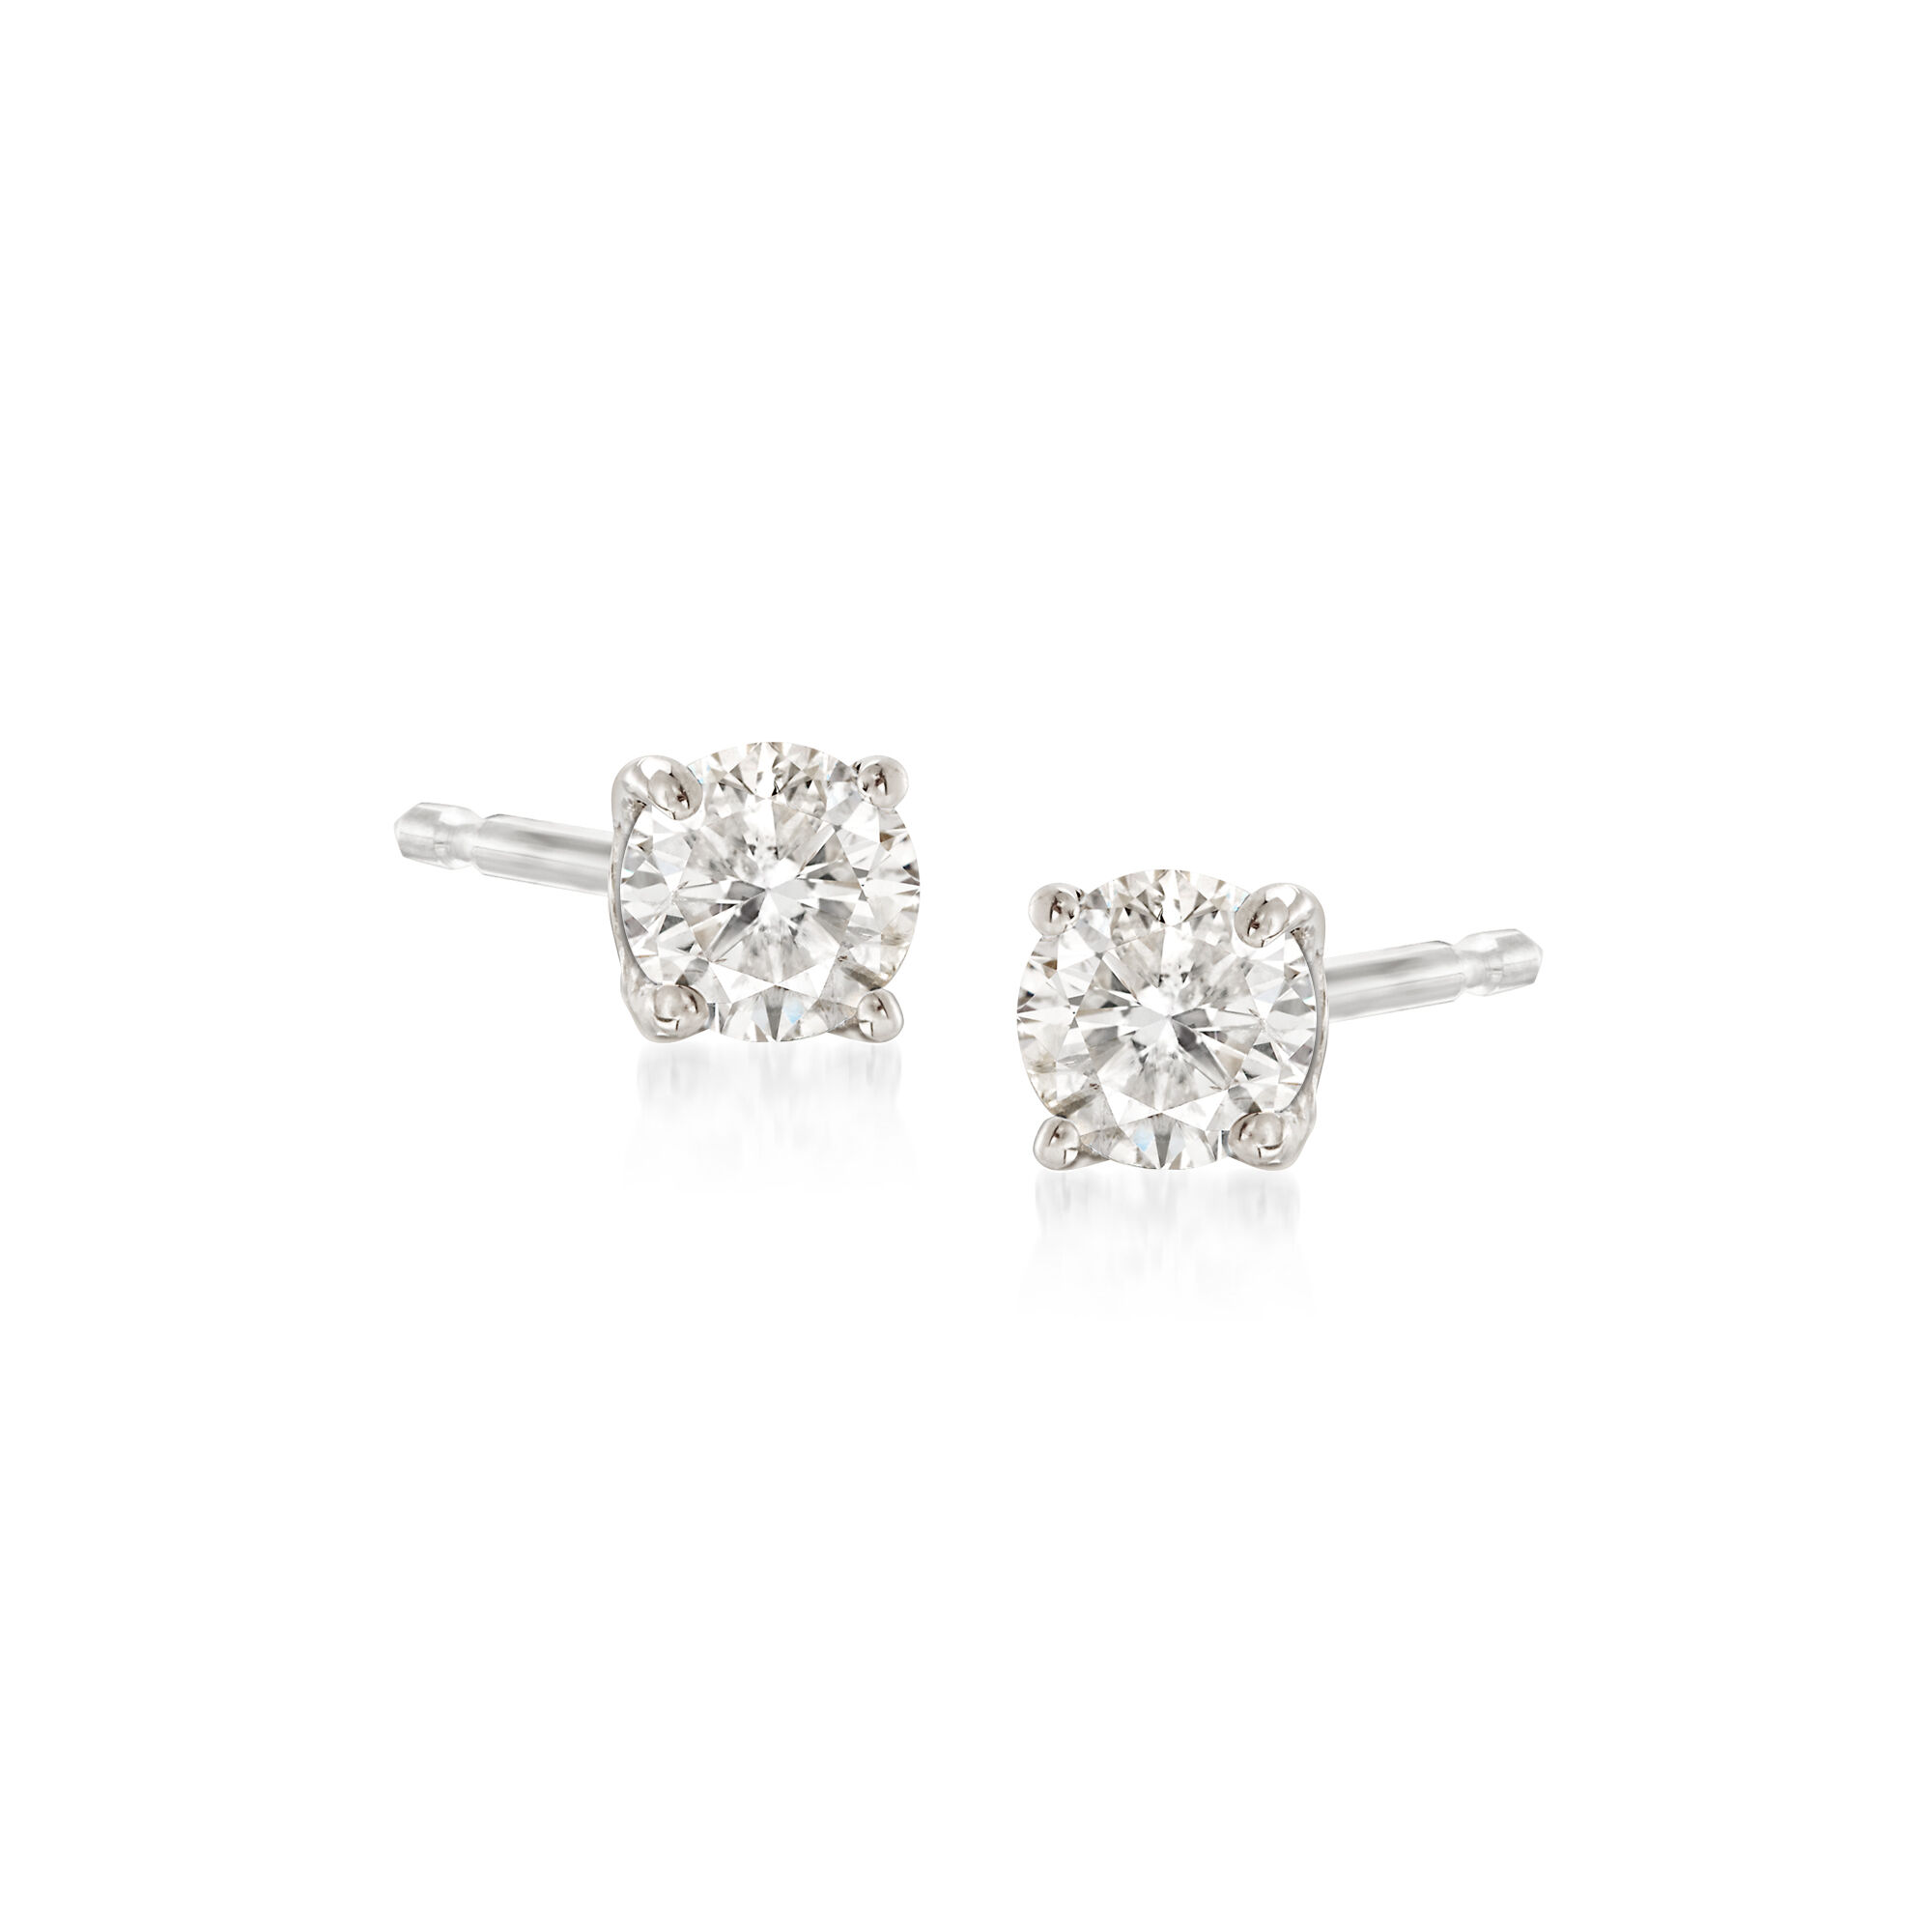 Princess Black Diamond Mens Stud Earrings AA Quality in 18K White Gold Available in Small to Large Sizes